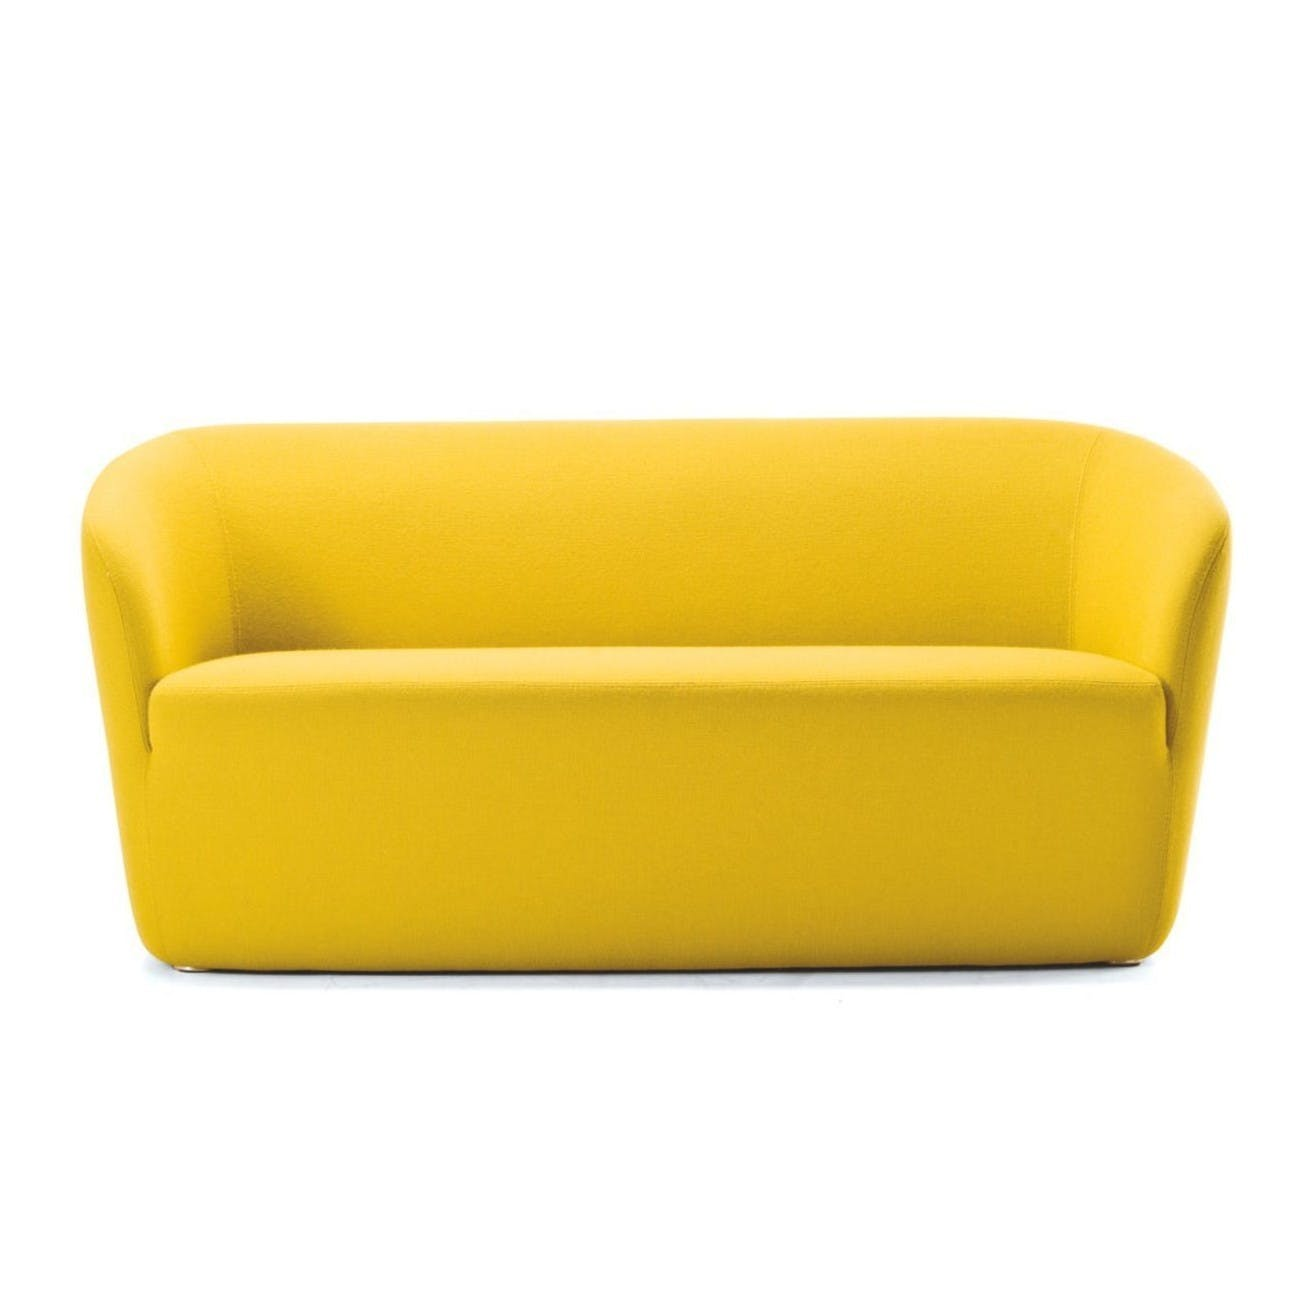 Lacividina-dep-sofa-yellow-white-haute-living